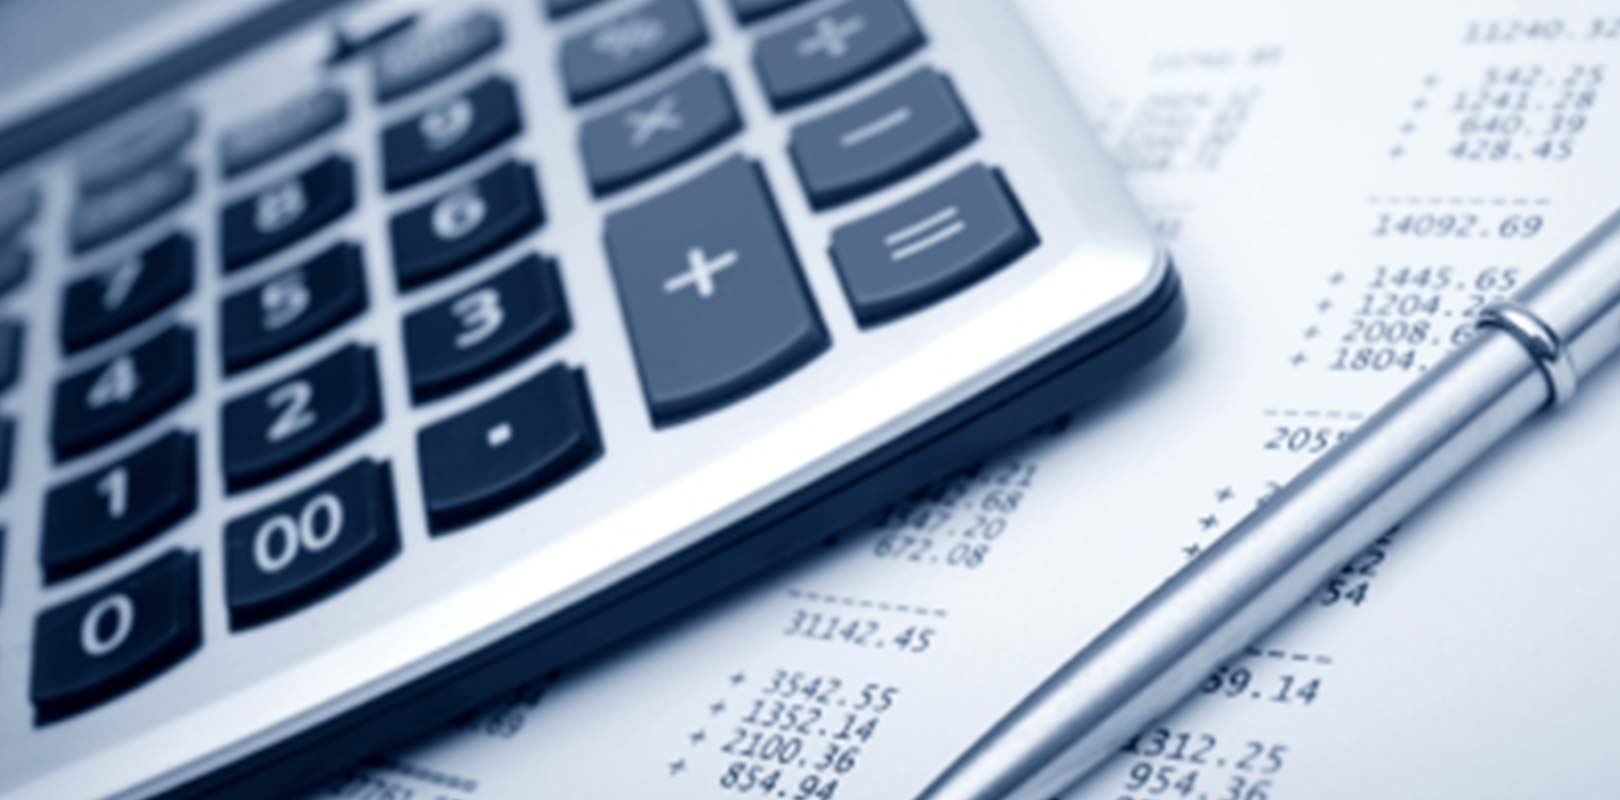 A calculator and finance documents